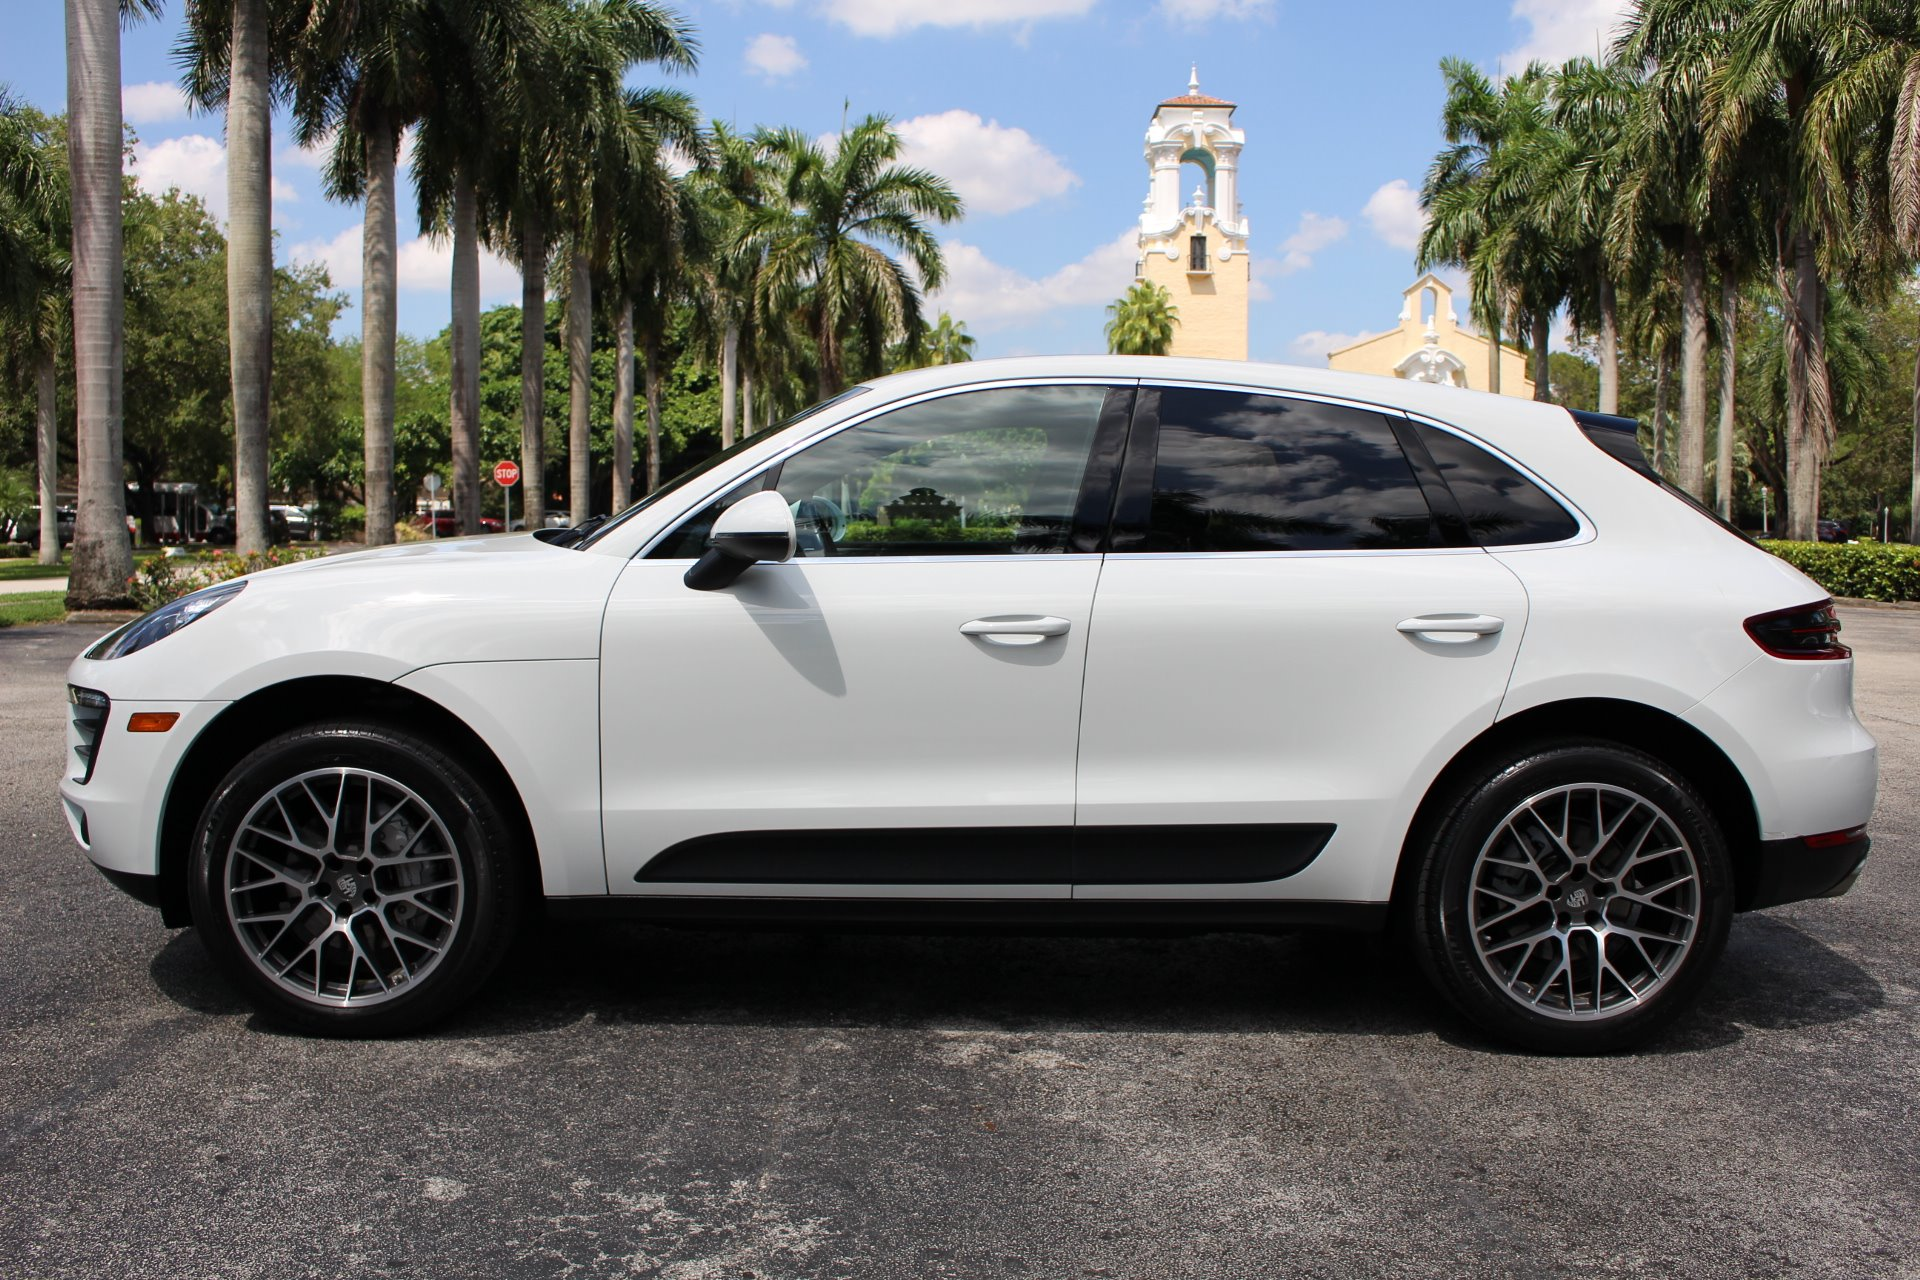 Used 2016 Porsche Macan S for sale Sold at The Gables Sports Cars in Miami FL 33146 2